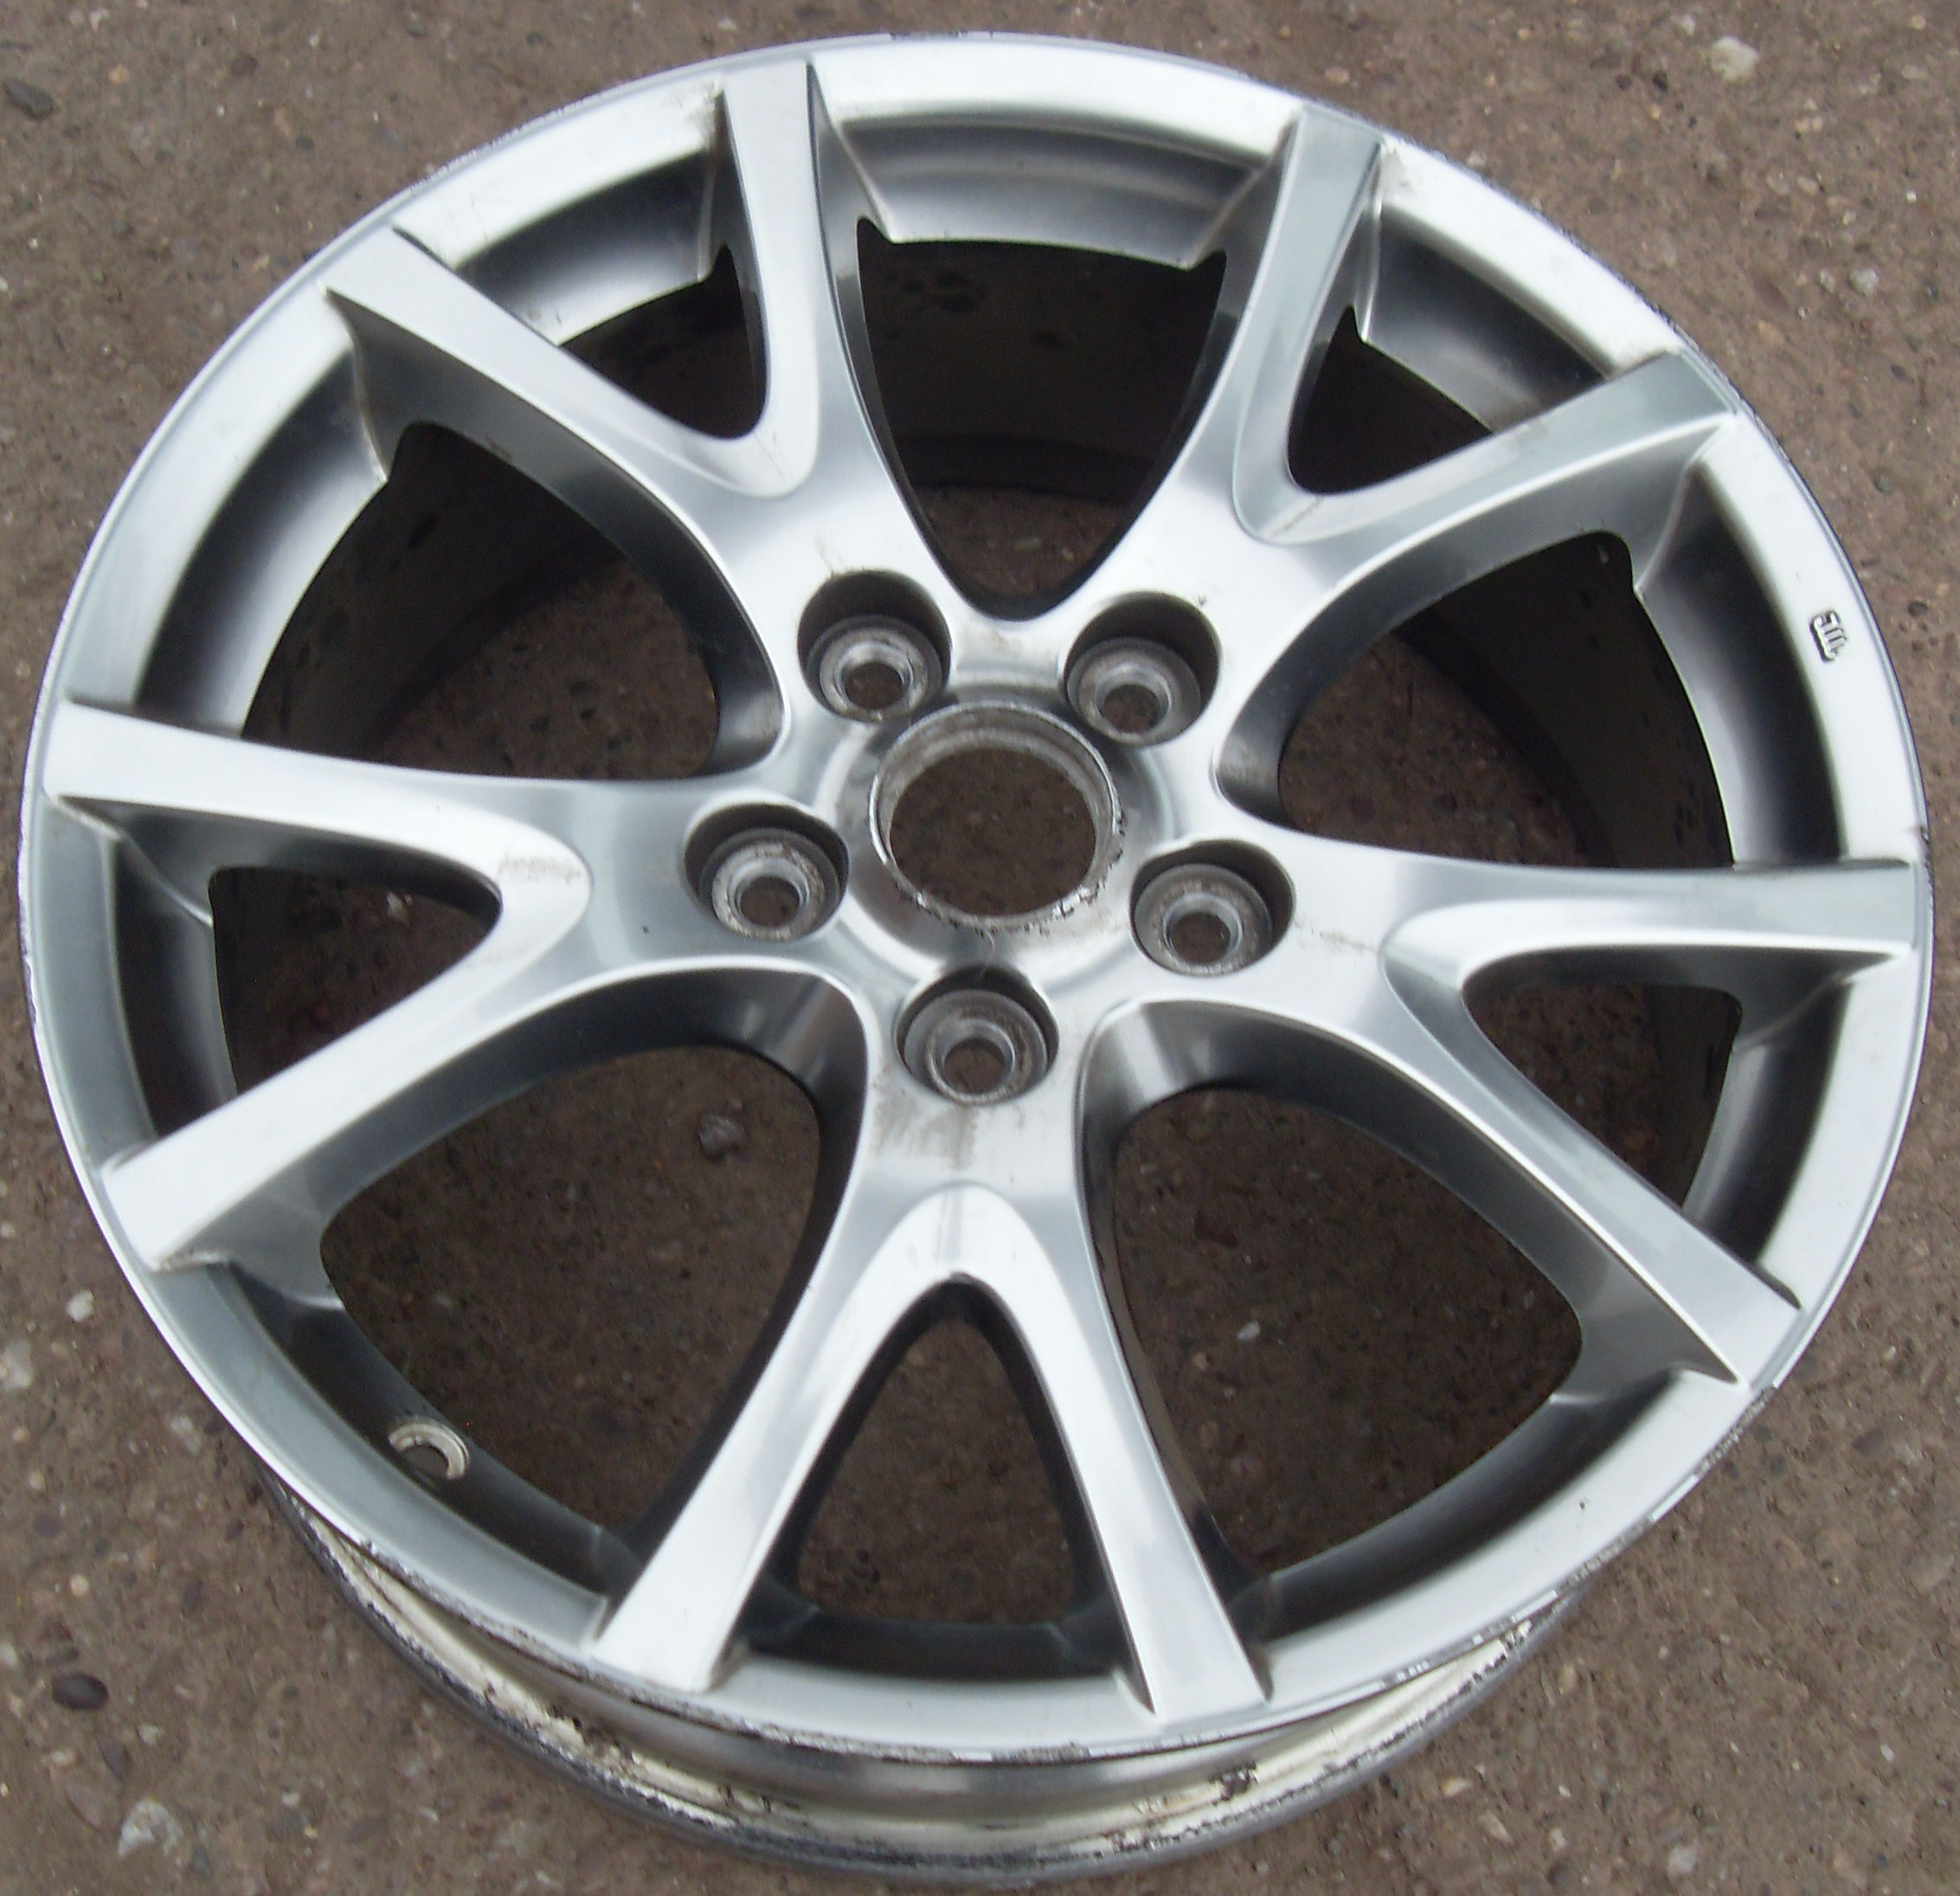 wheel set tyres original mazda and sport wheels alloy rims of